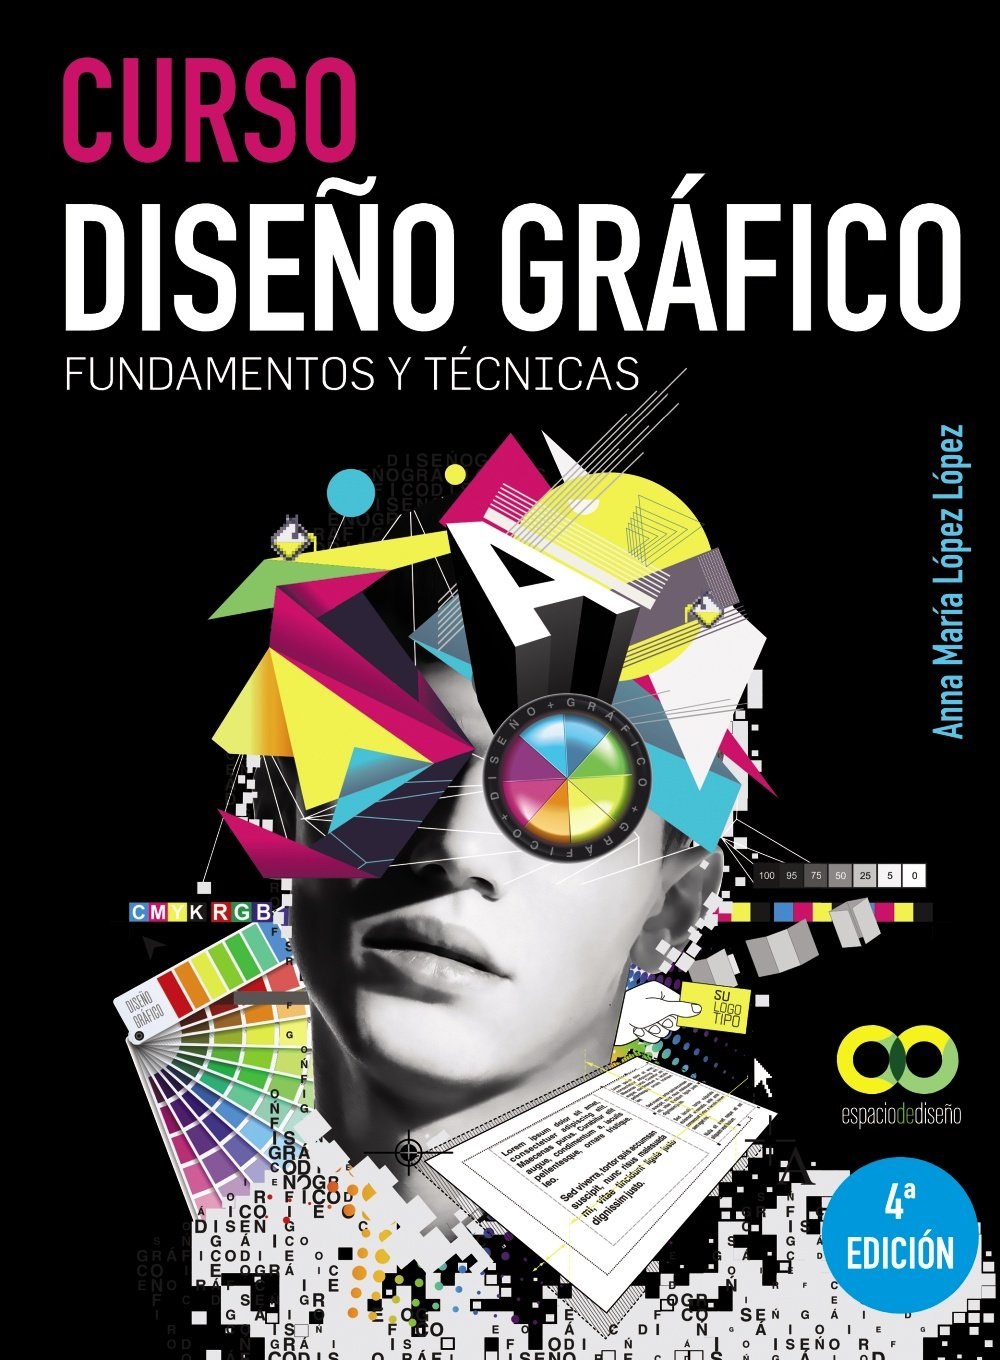 Libro Curso diseño gráfico / Graphic Design Course: Fundamentos y técnicas / Fundamentals and Techniques Pasta blanda - Amazon